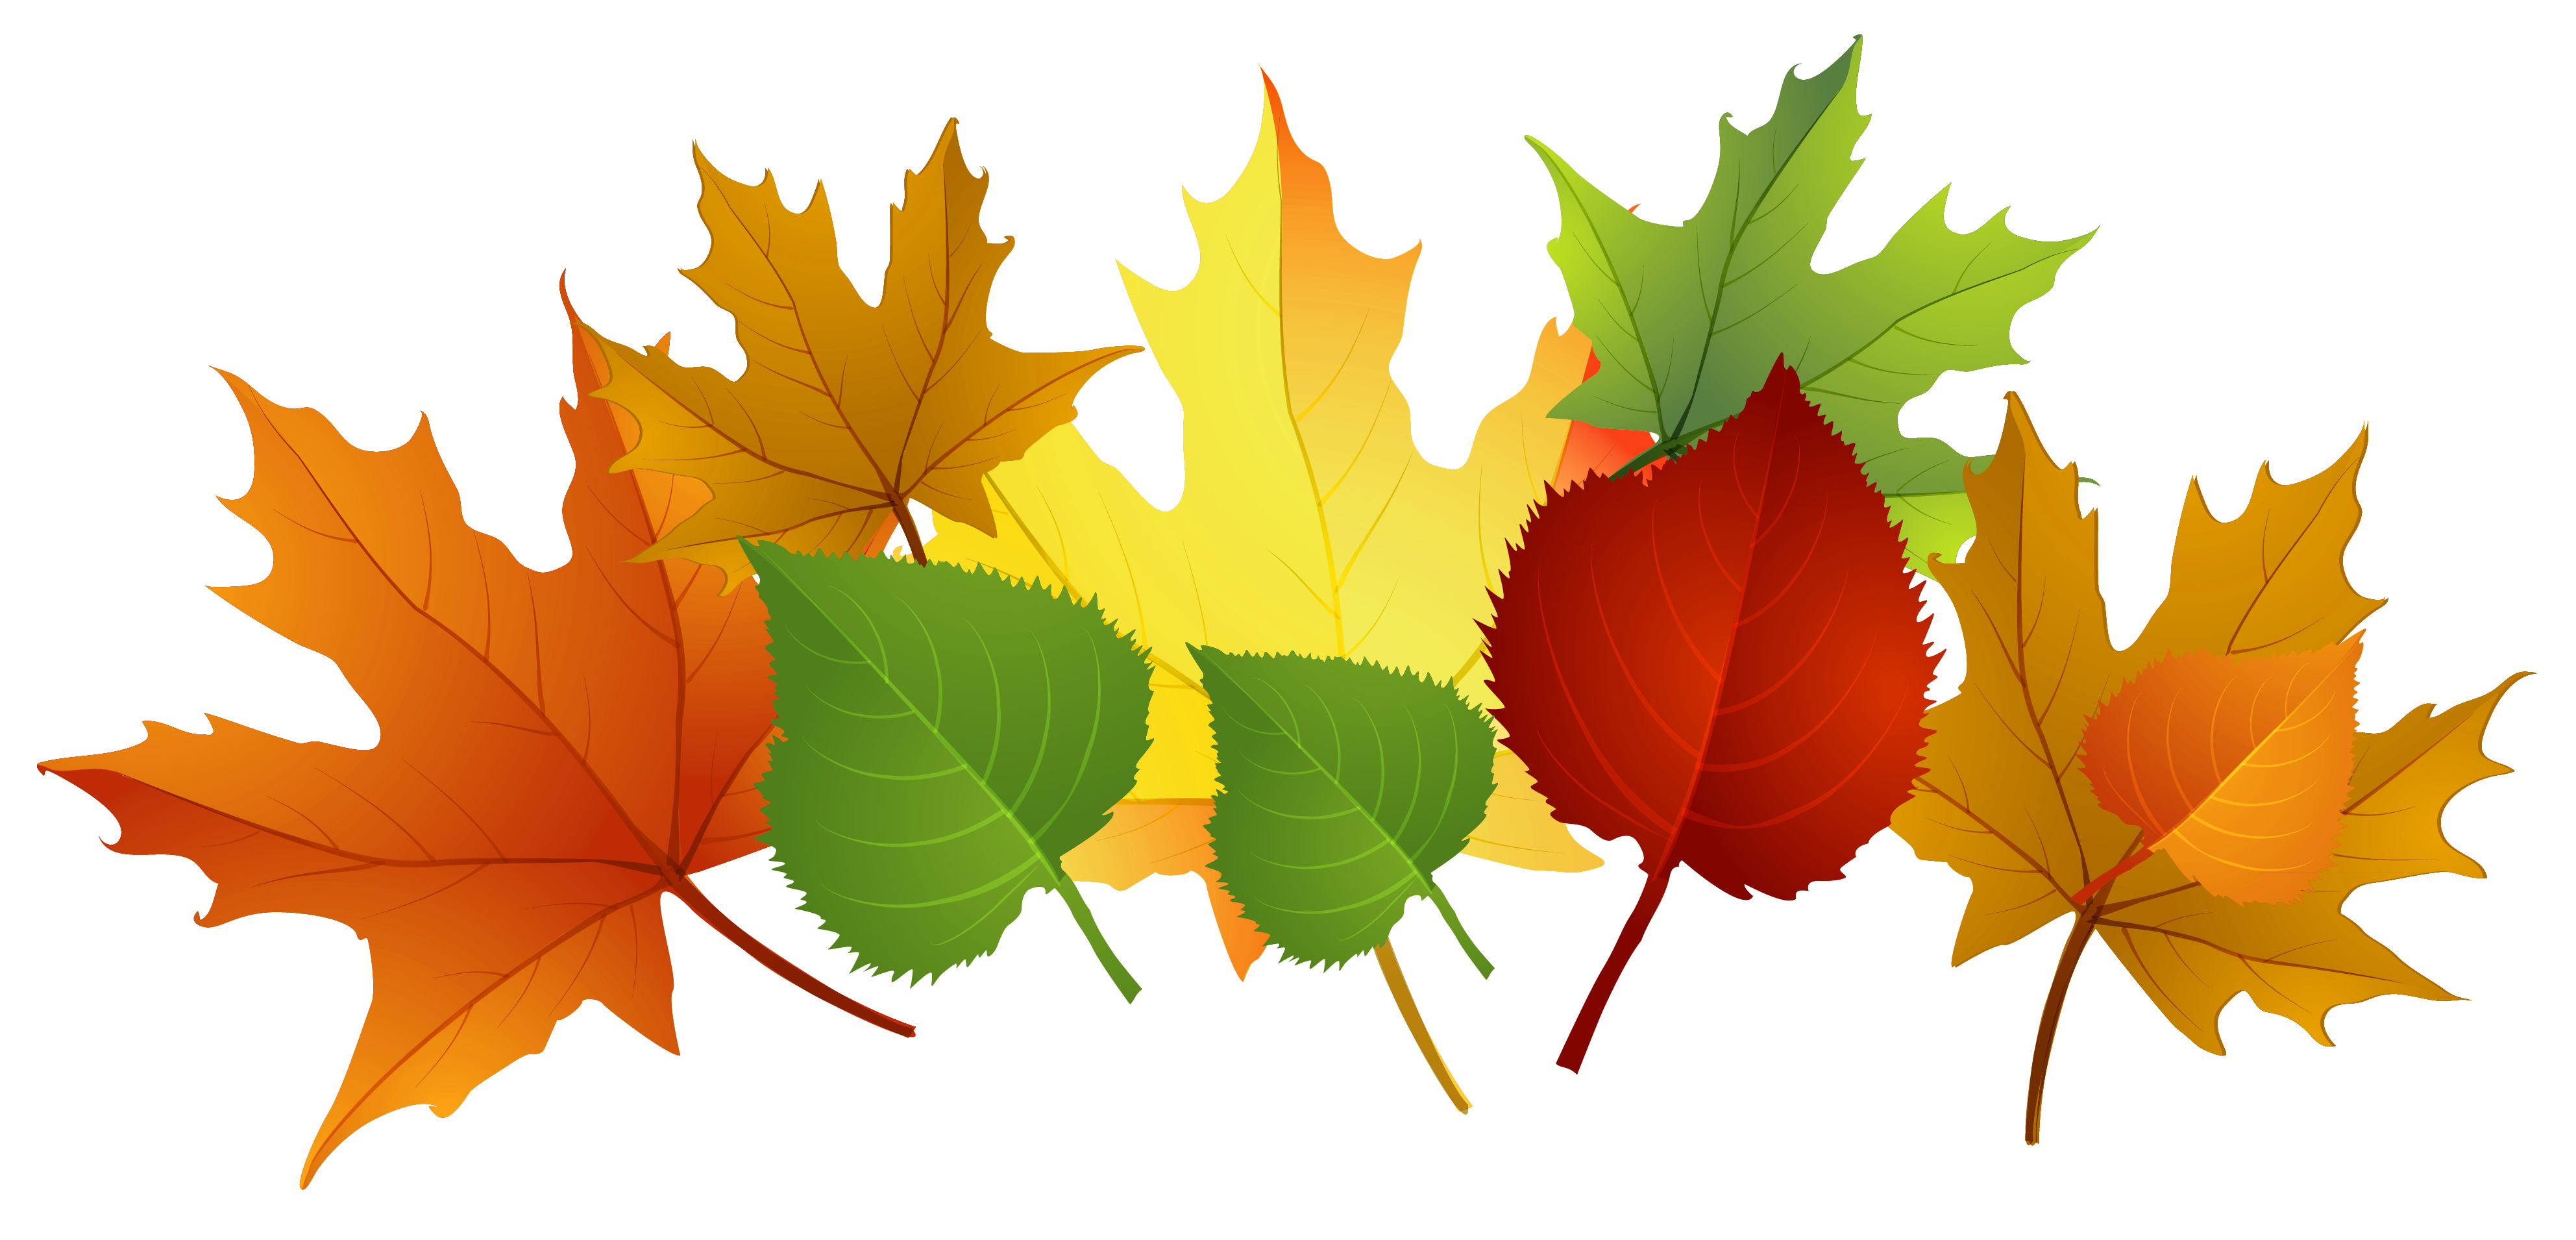 Fall Leaf Clip Art Free Cliparts That Yo-Fall Leaf Clip Art Free Cliparts That You Can Download To You-1